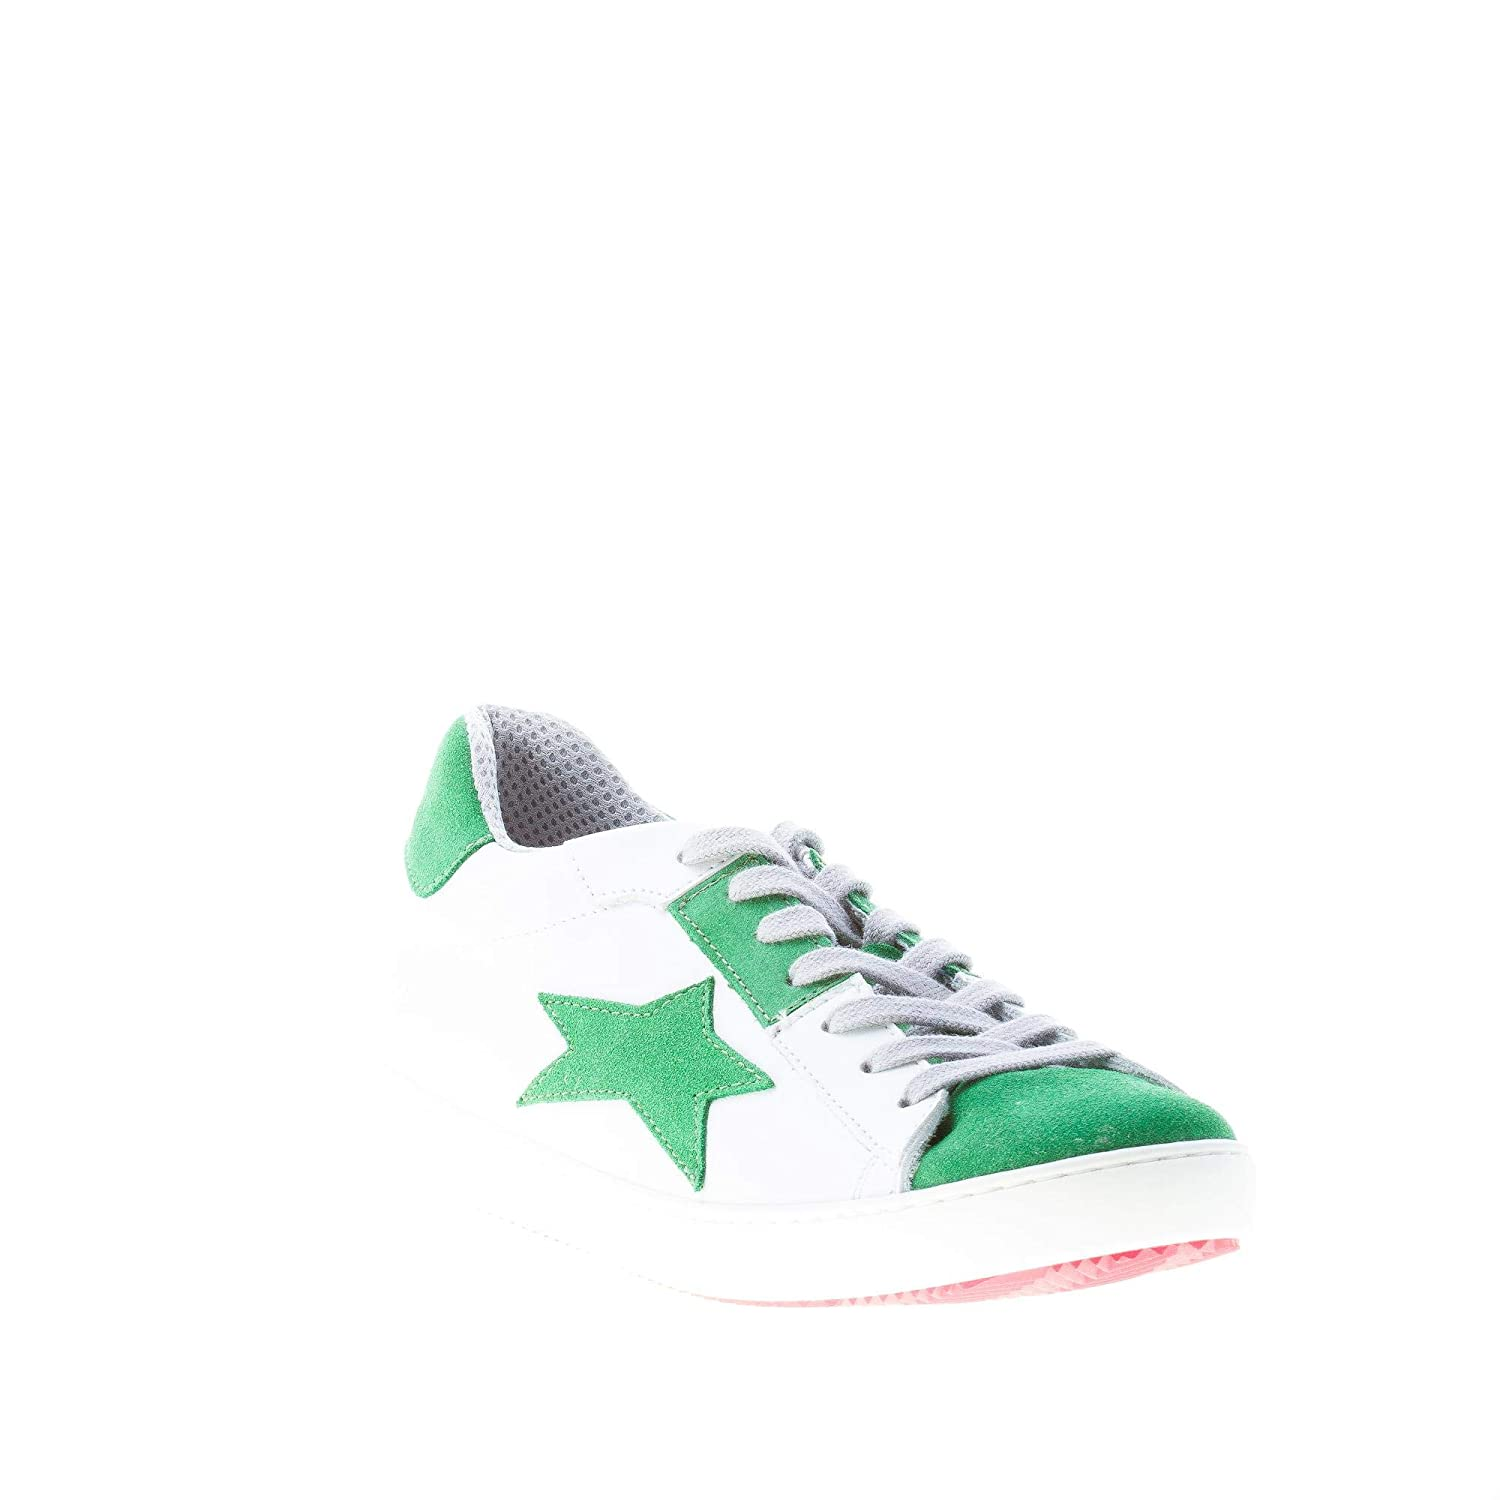 Ishikawa Men Shoes White Leather Down 1479 Sneaker Green Suede Made in  Italy  Amazon.co.uk  Shoes   Bags d5d57c28da0